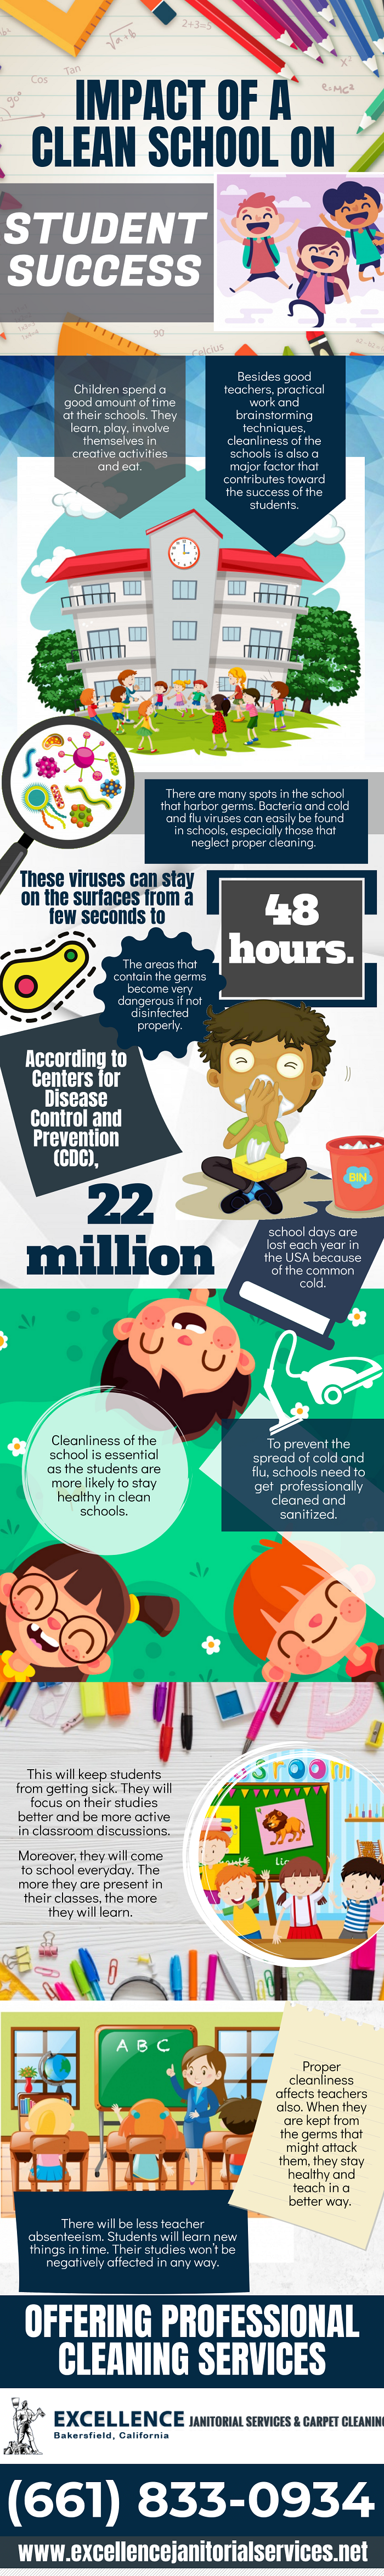 Impact of a Clean School on Student Success